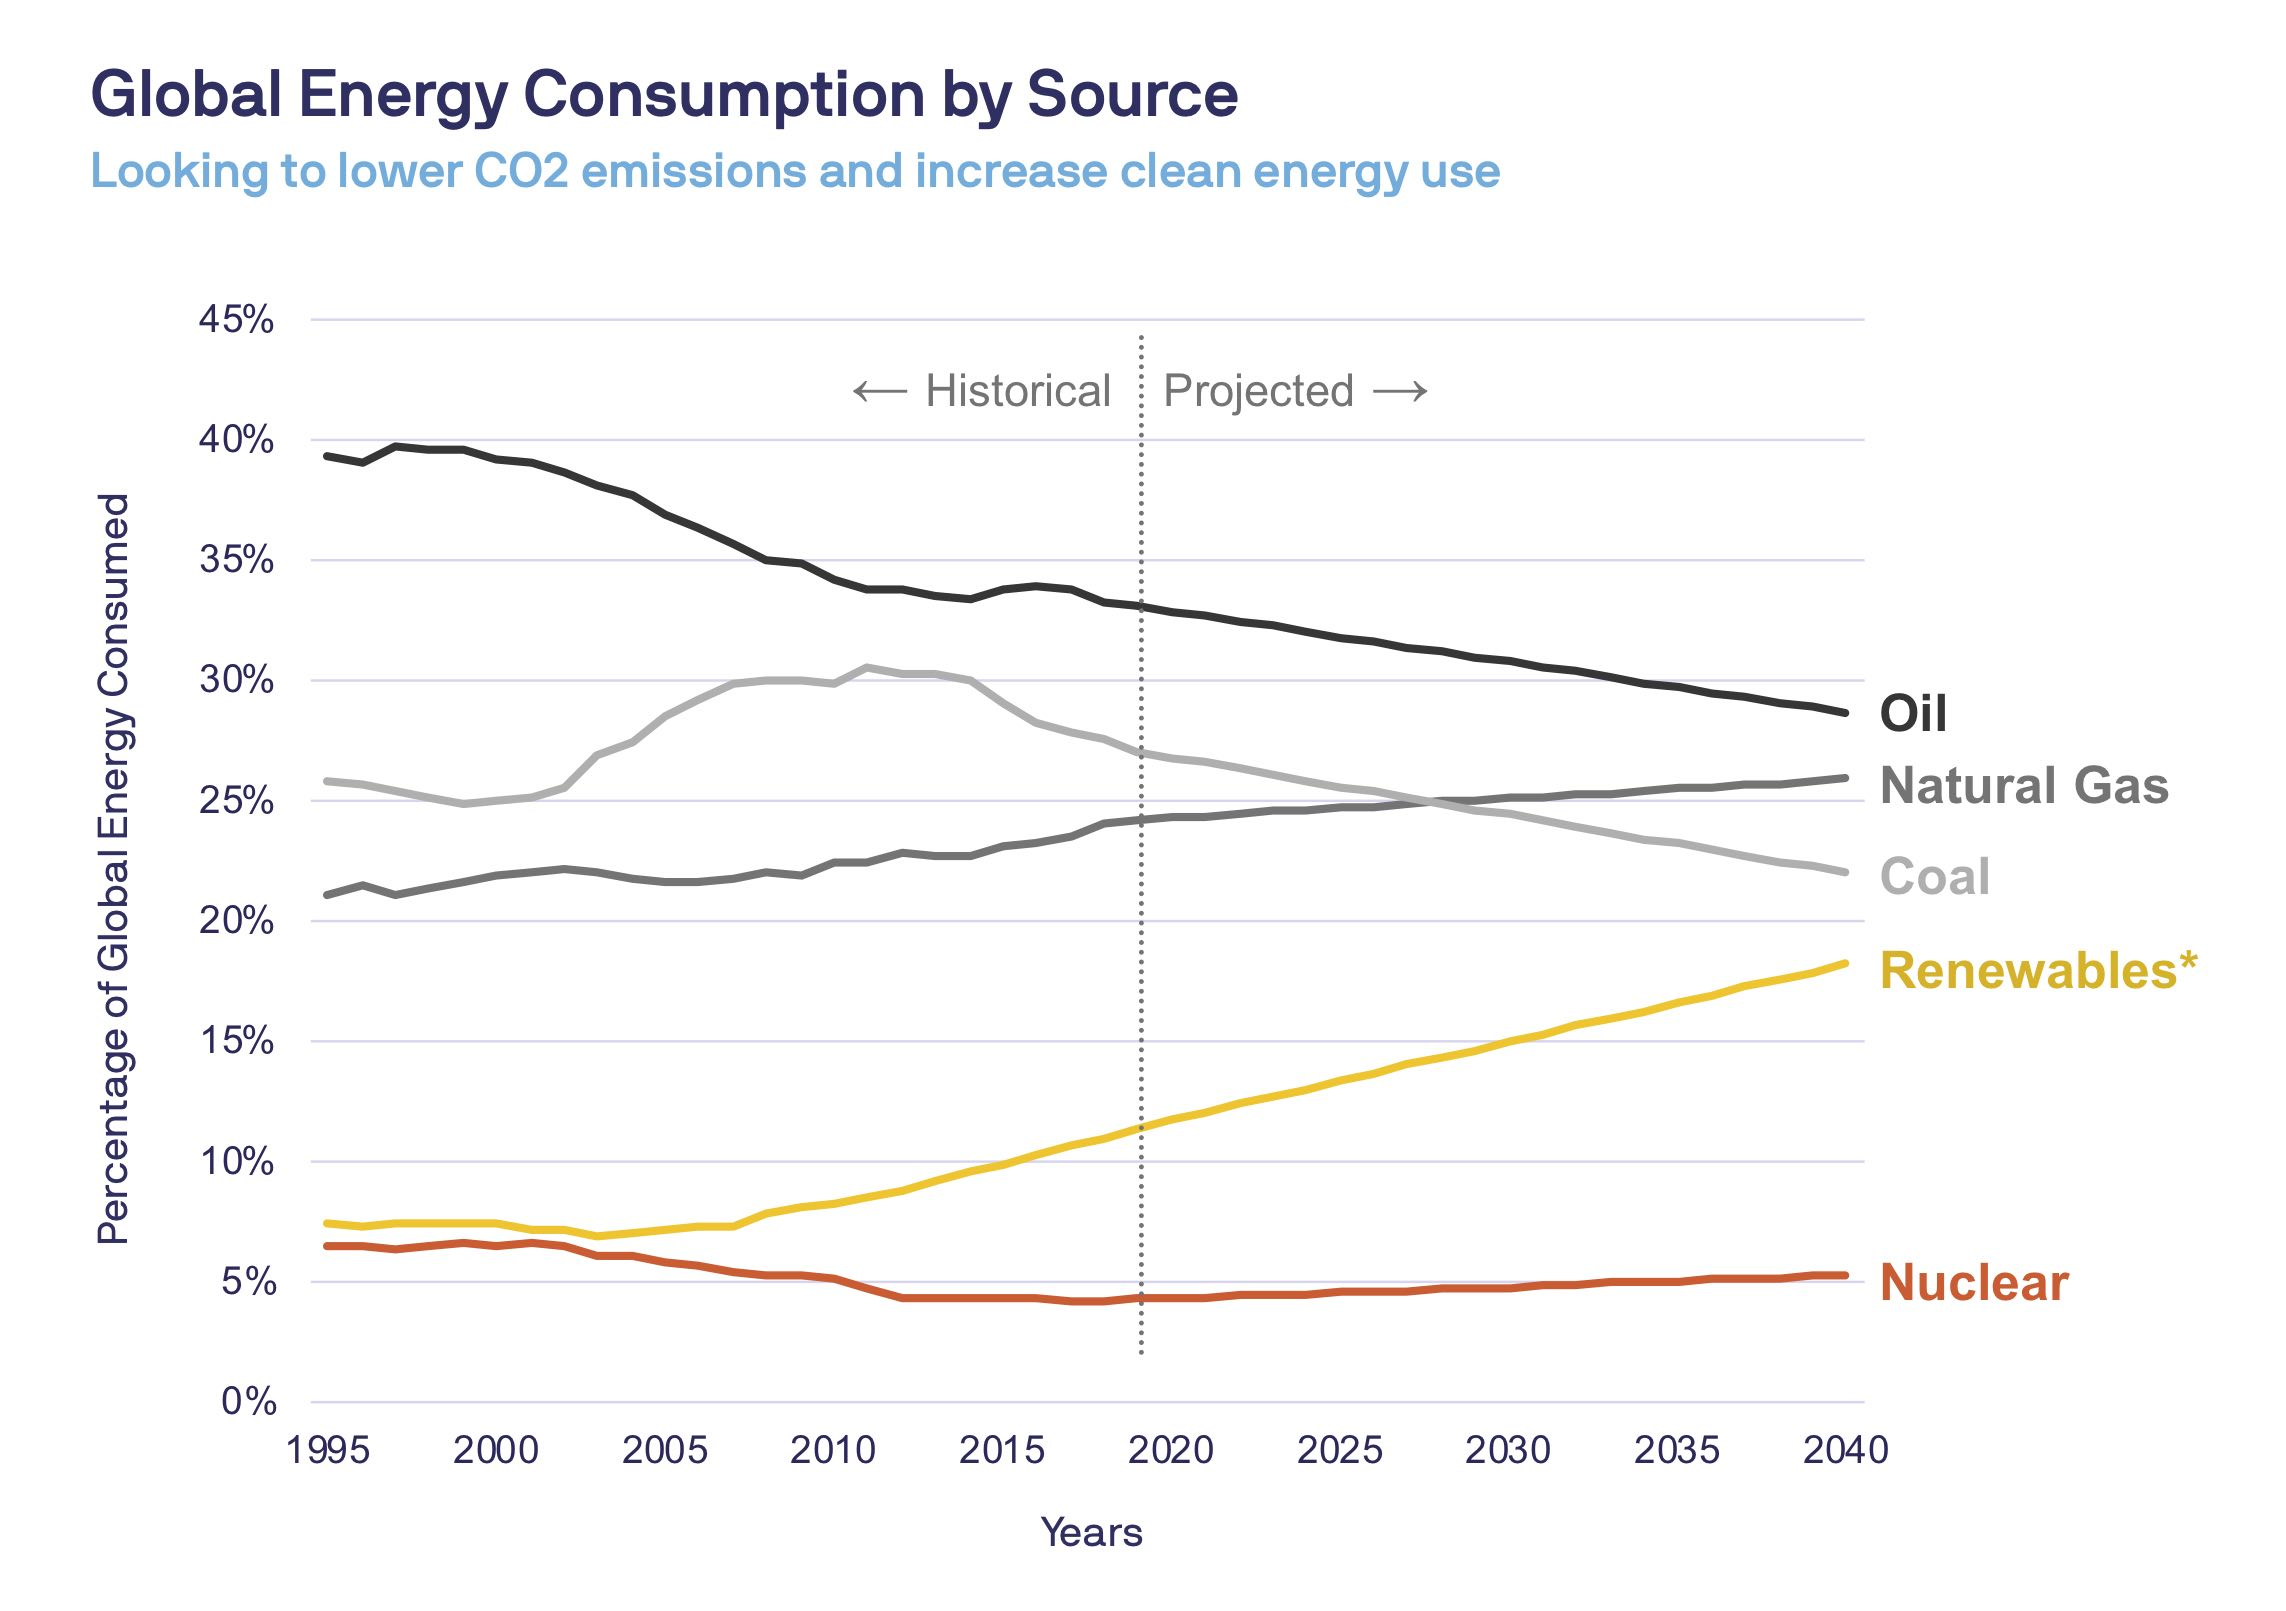 Global energy consumption by source. Looking to lower CO2 emissions and increase clean energy use.